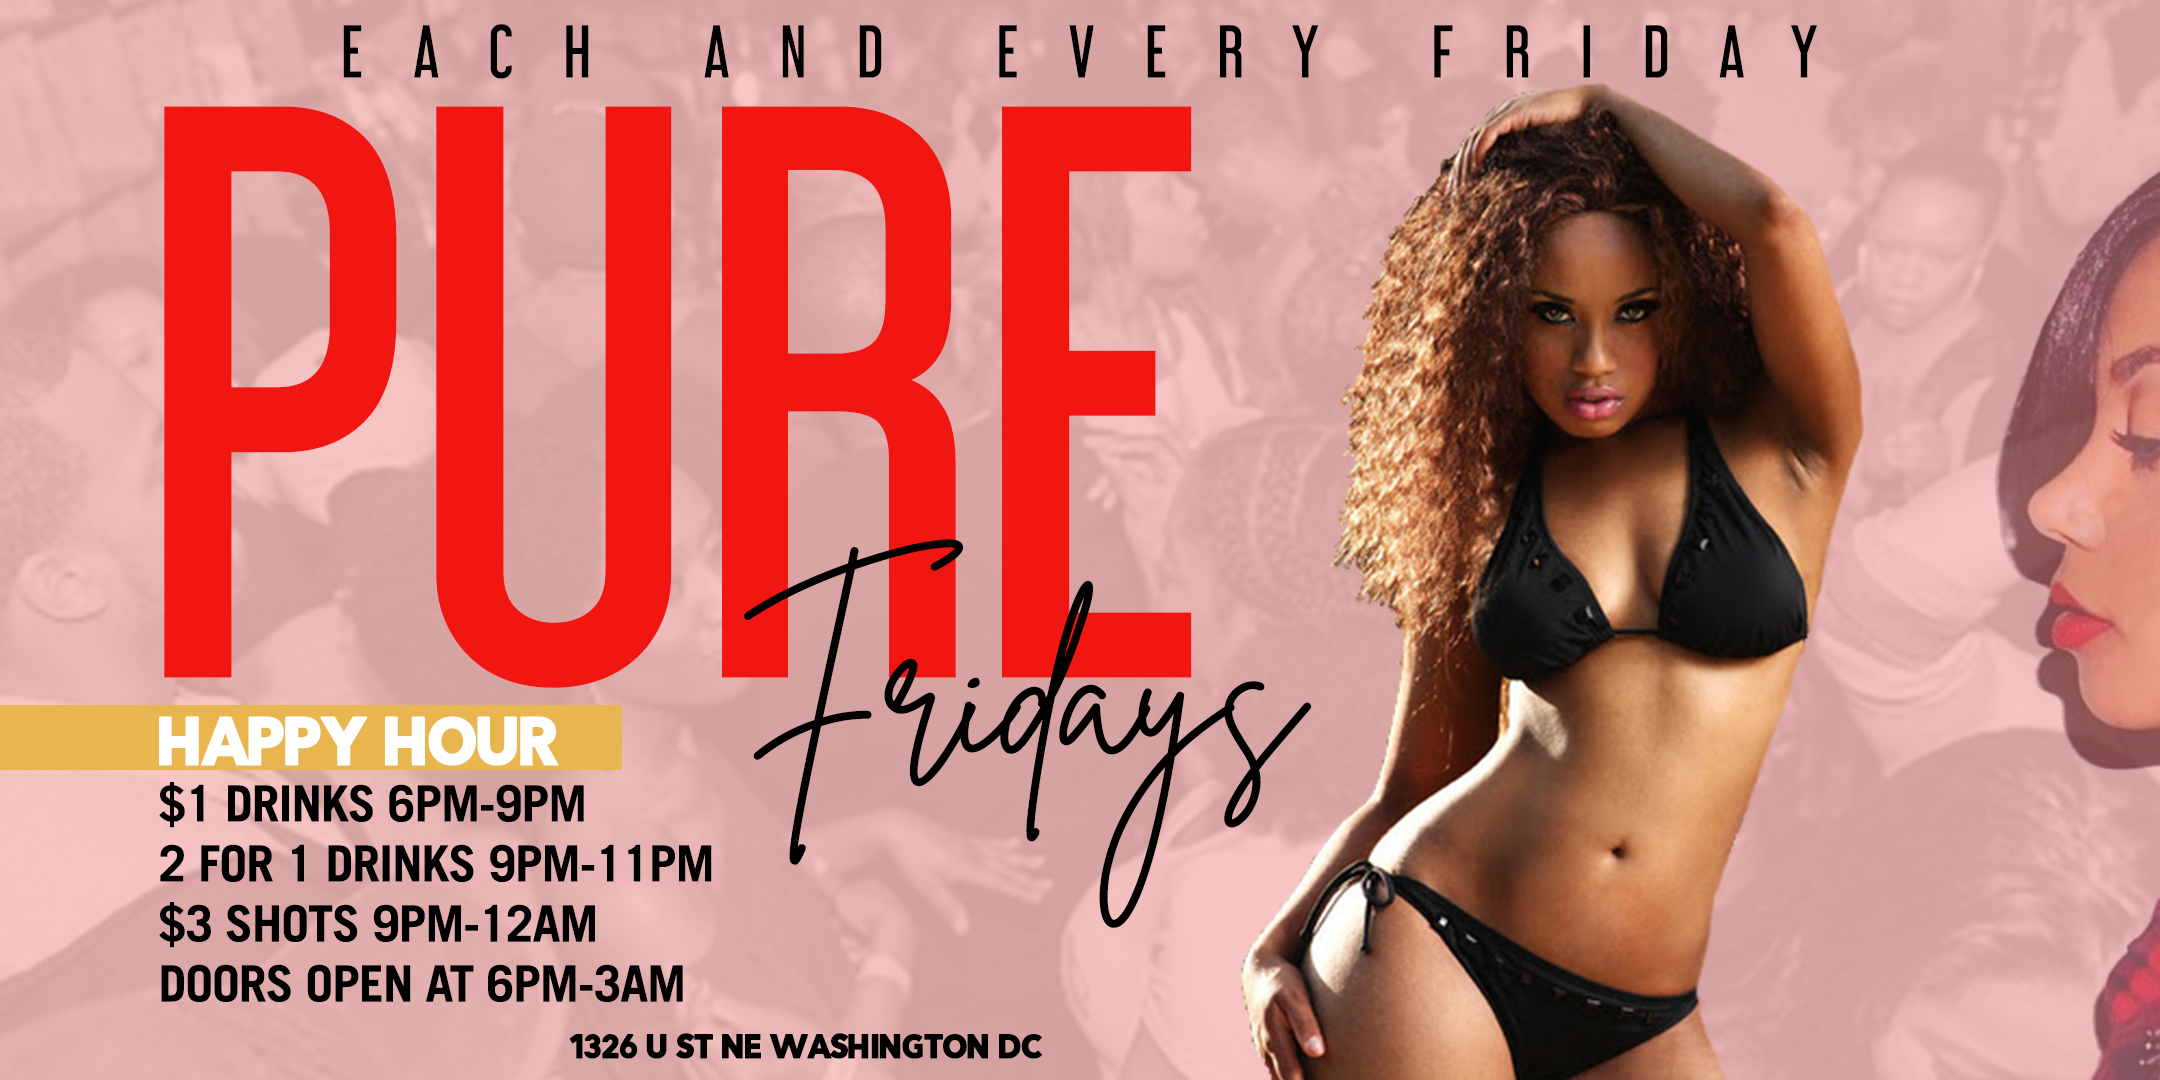 Pure Fridays $1 Drinks 6-9pm 2 for 1 Drinks 9pm - 11pm $3 Shots 9pm - 12am